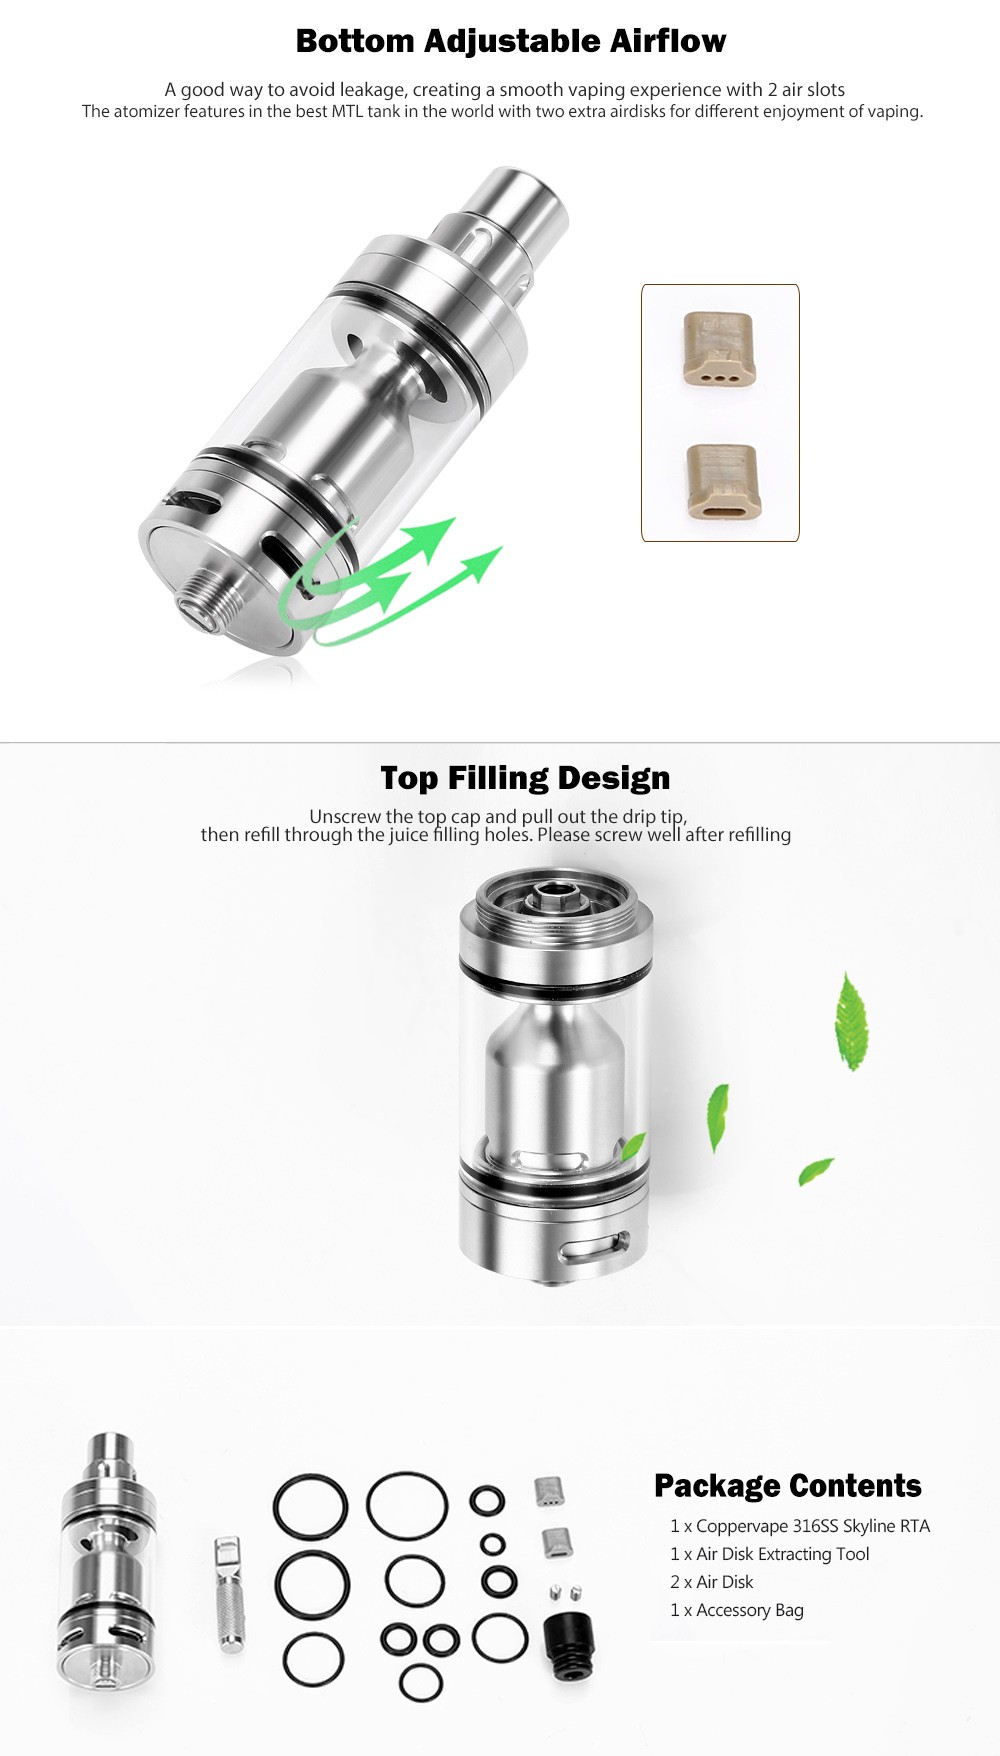 Coppervape 316SS Skyline RTA / MTL Tank with Top Filling / Bottom Adjustable Airflow for E Cigarette